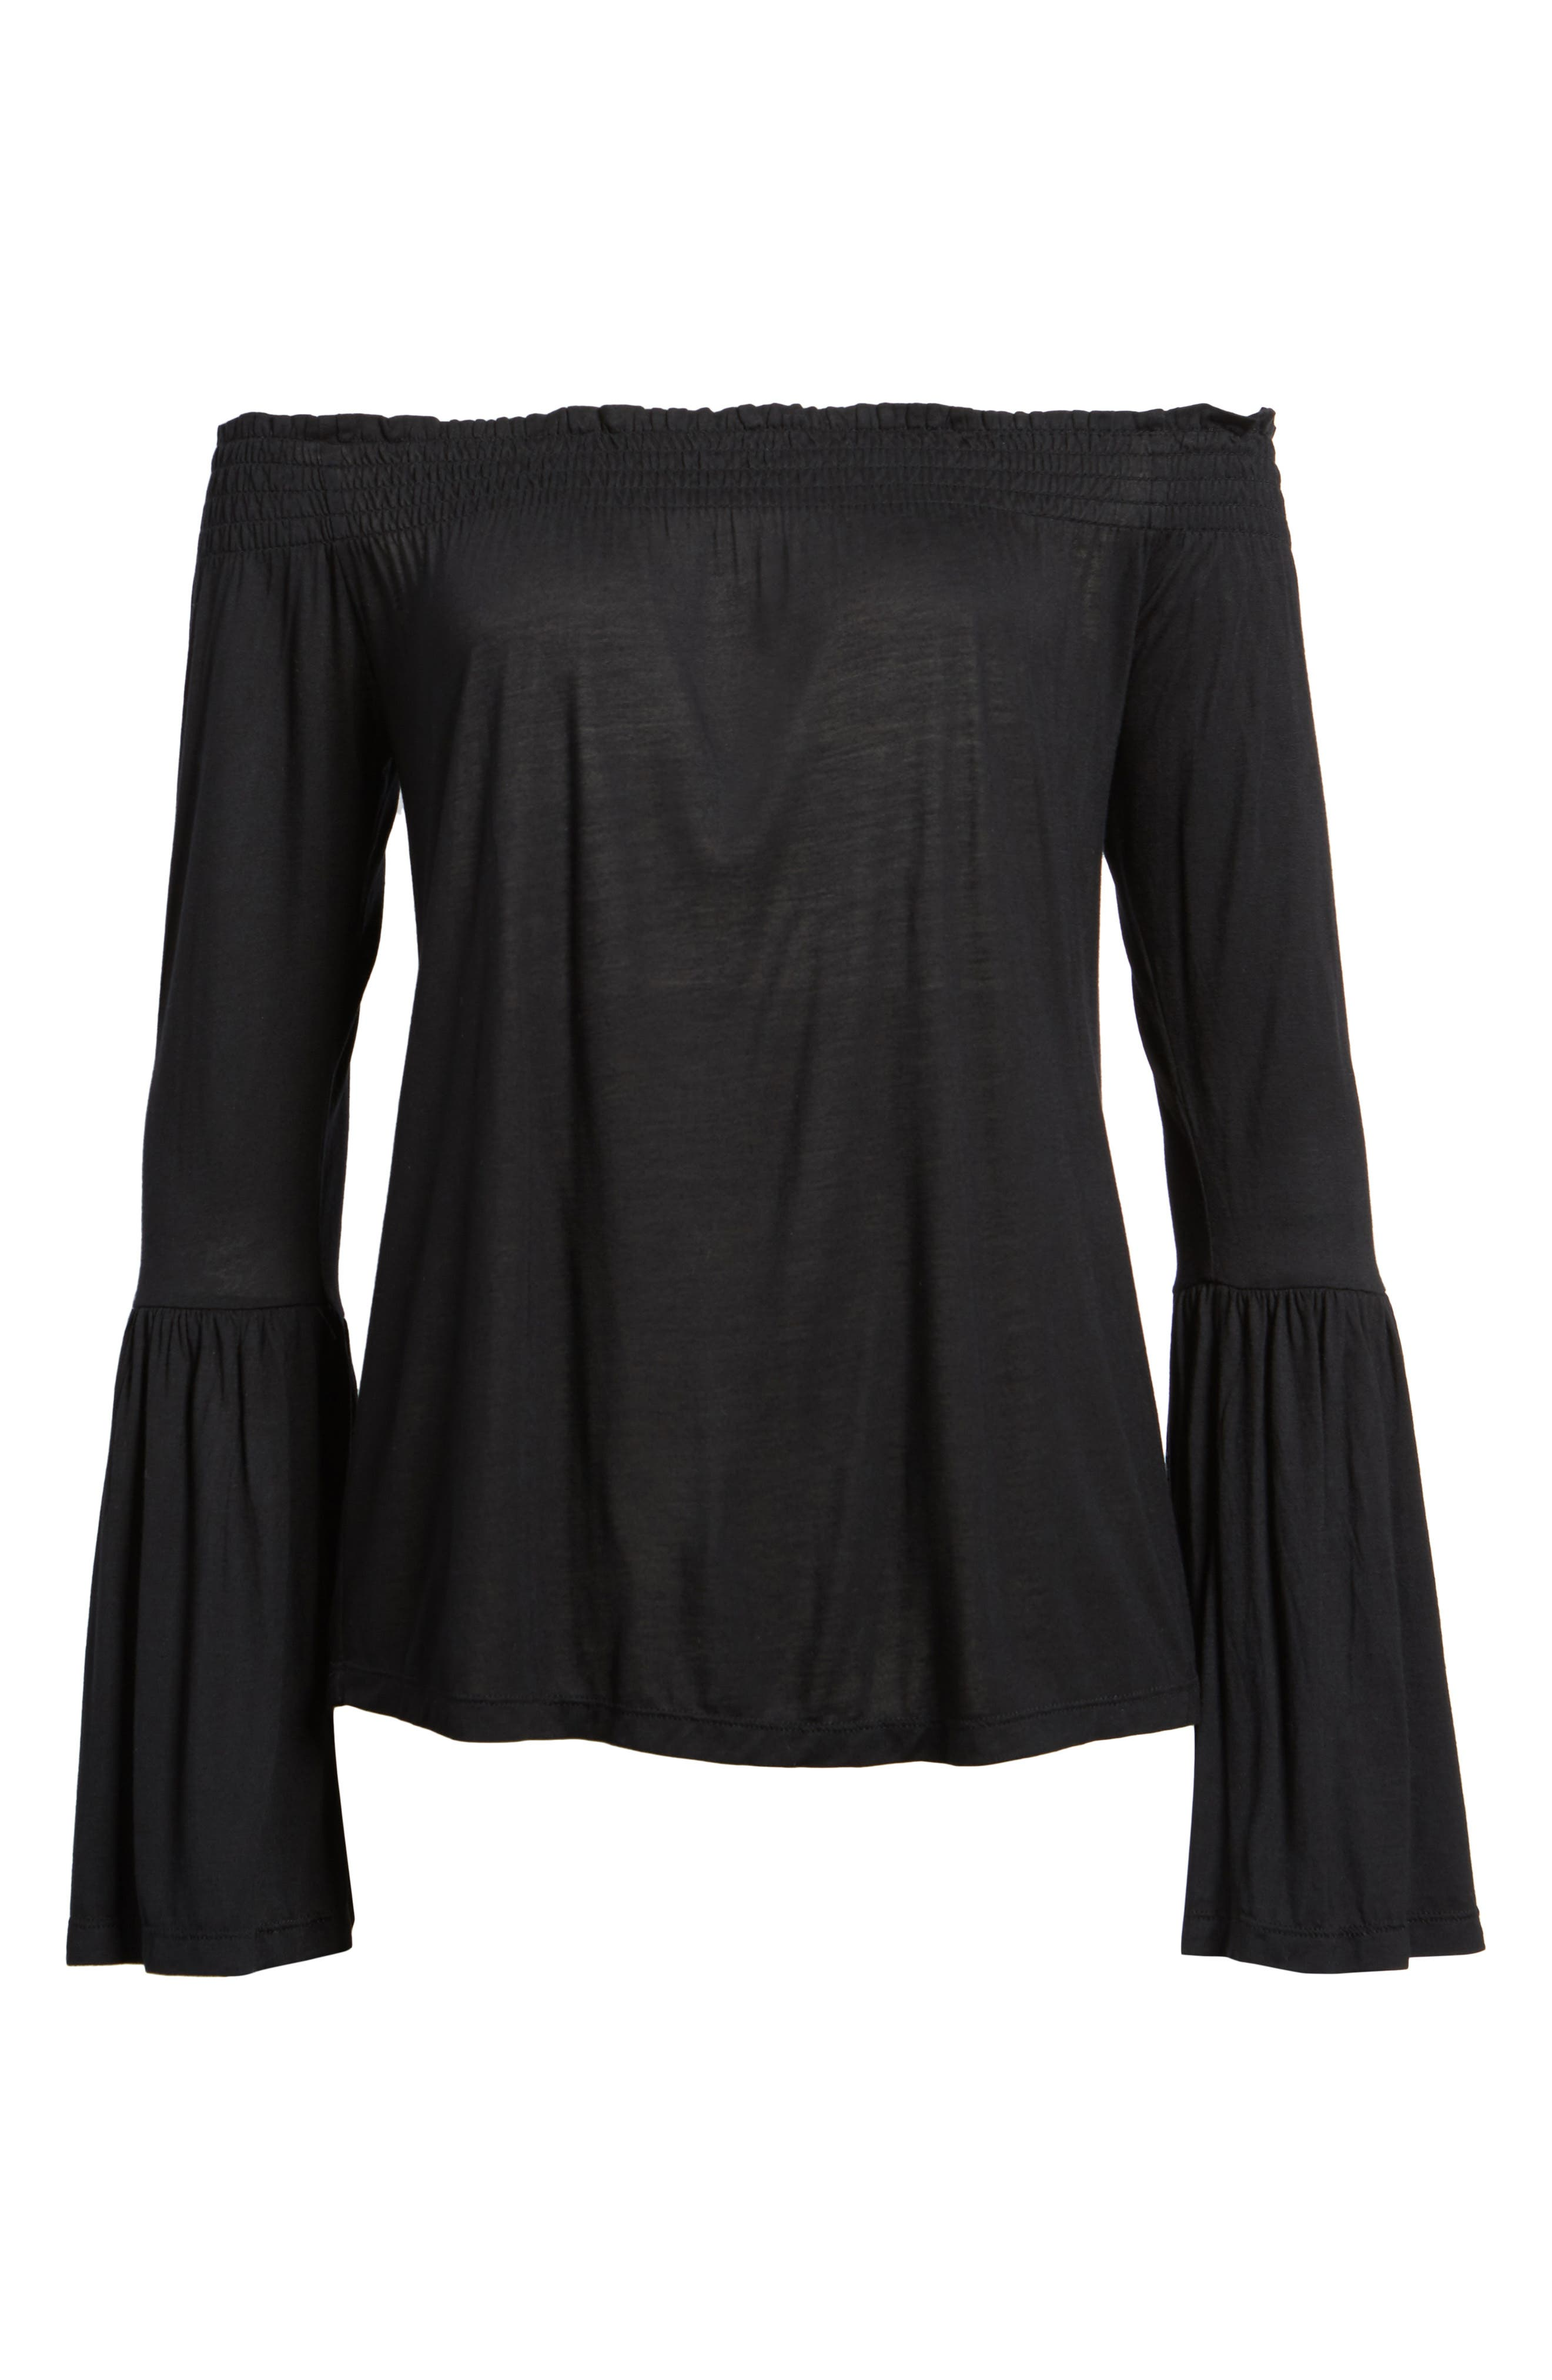 Luck Off the Shoulder Top,                             Alternate thumbnail 6, color,